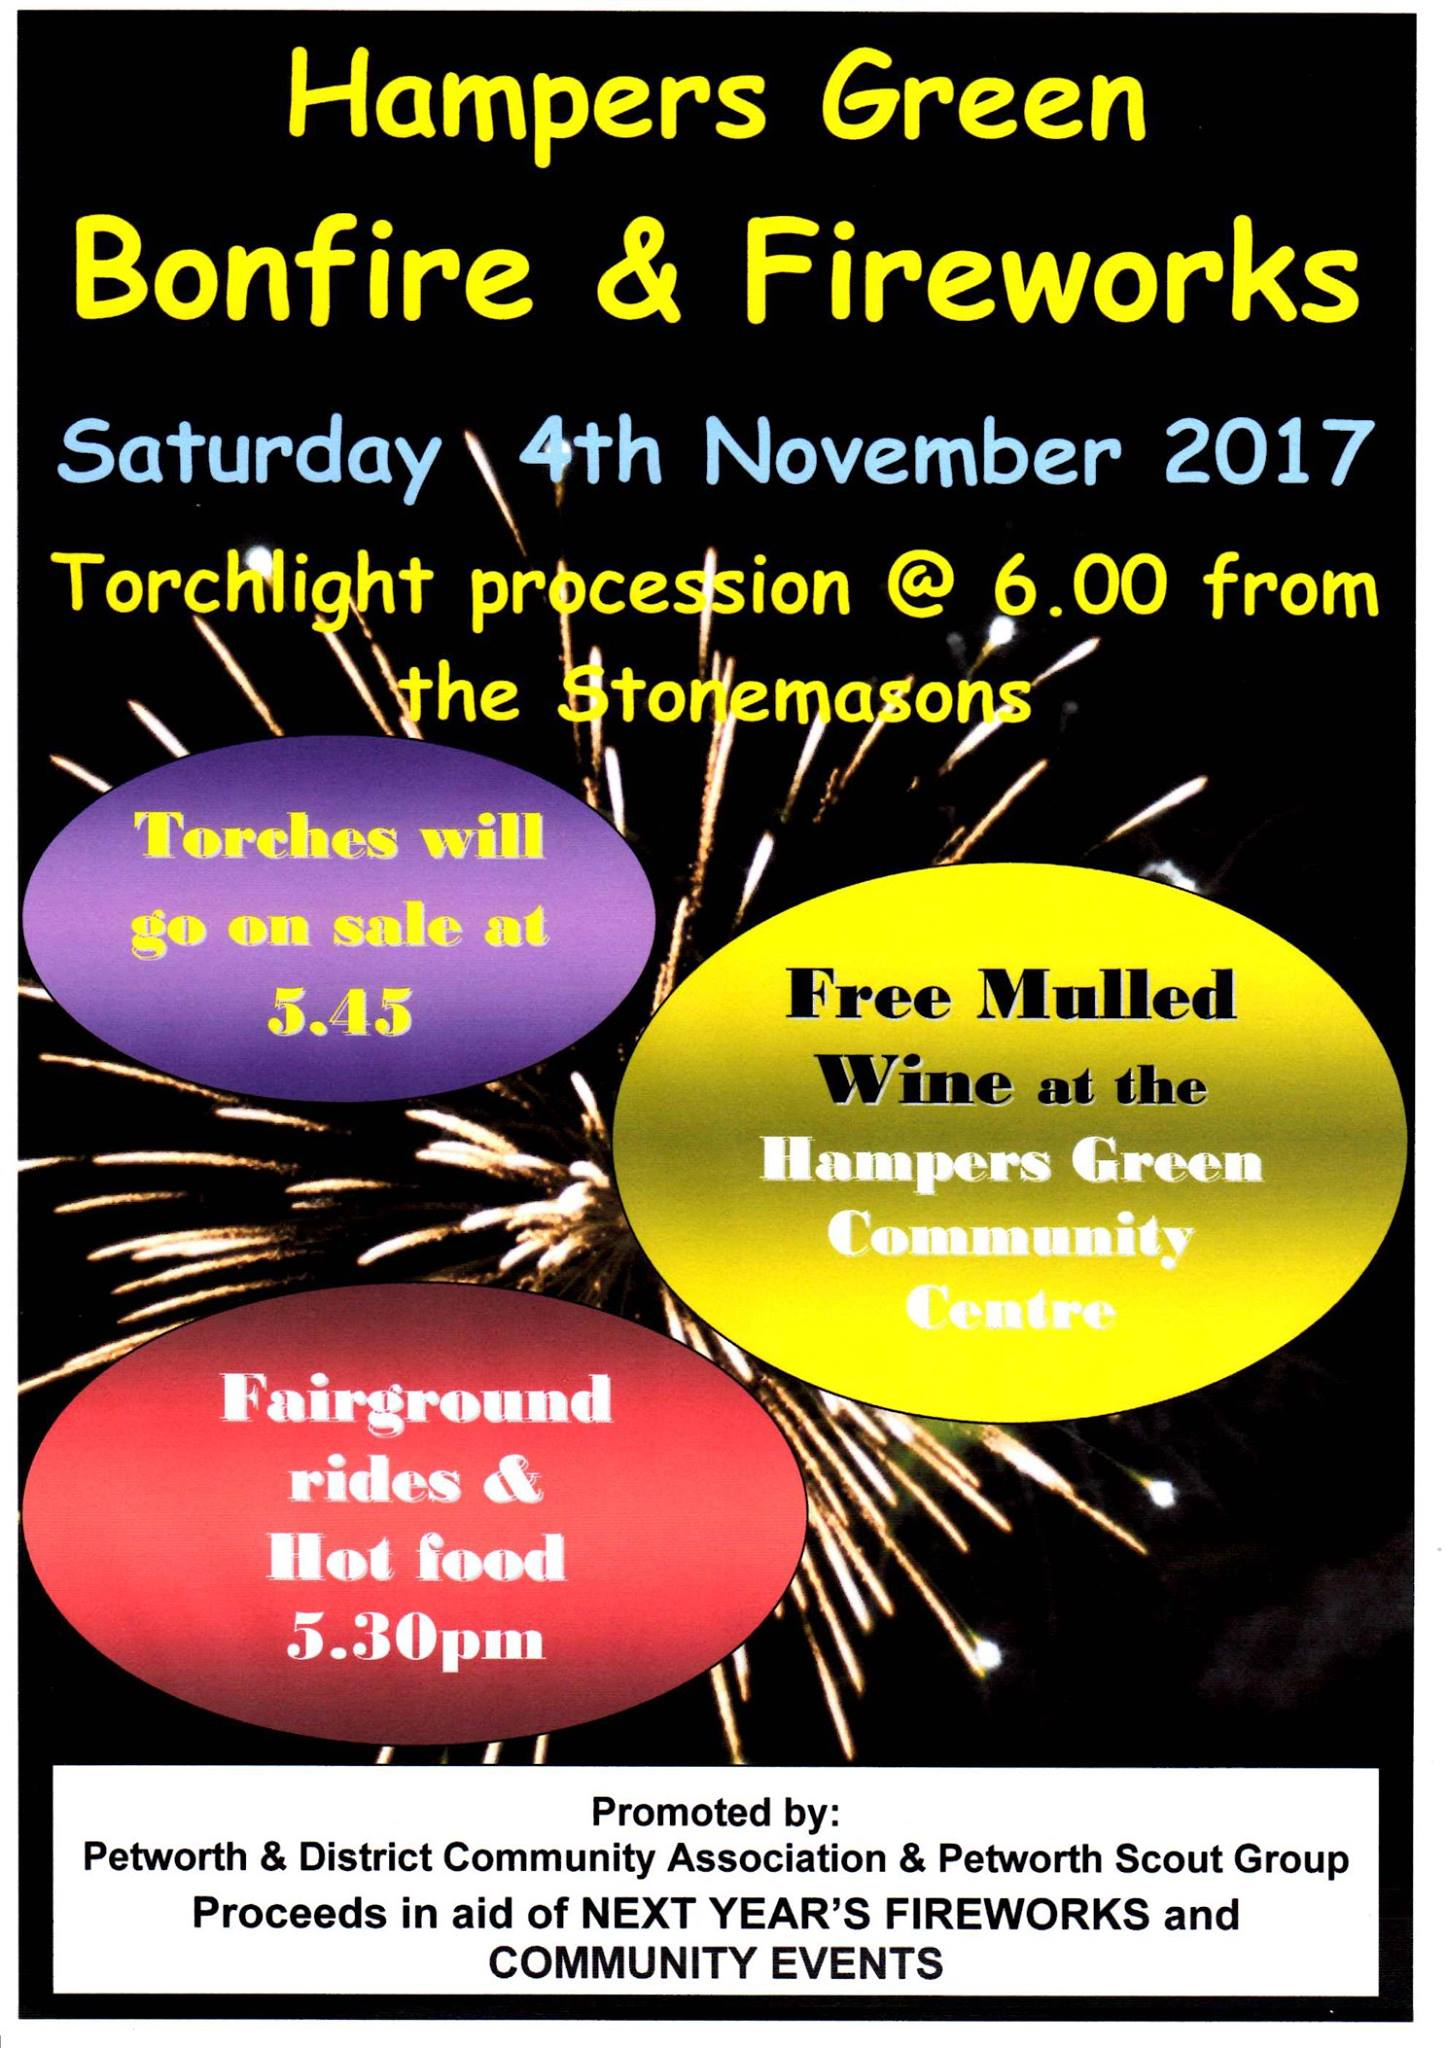 Hampers Green Bonfire and Fireworks